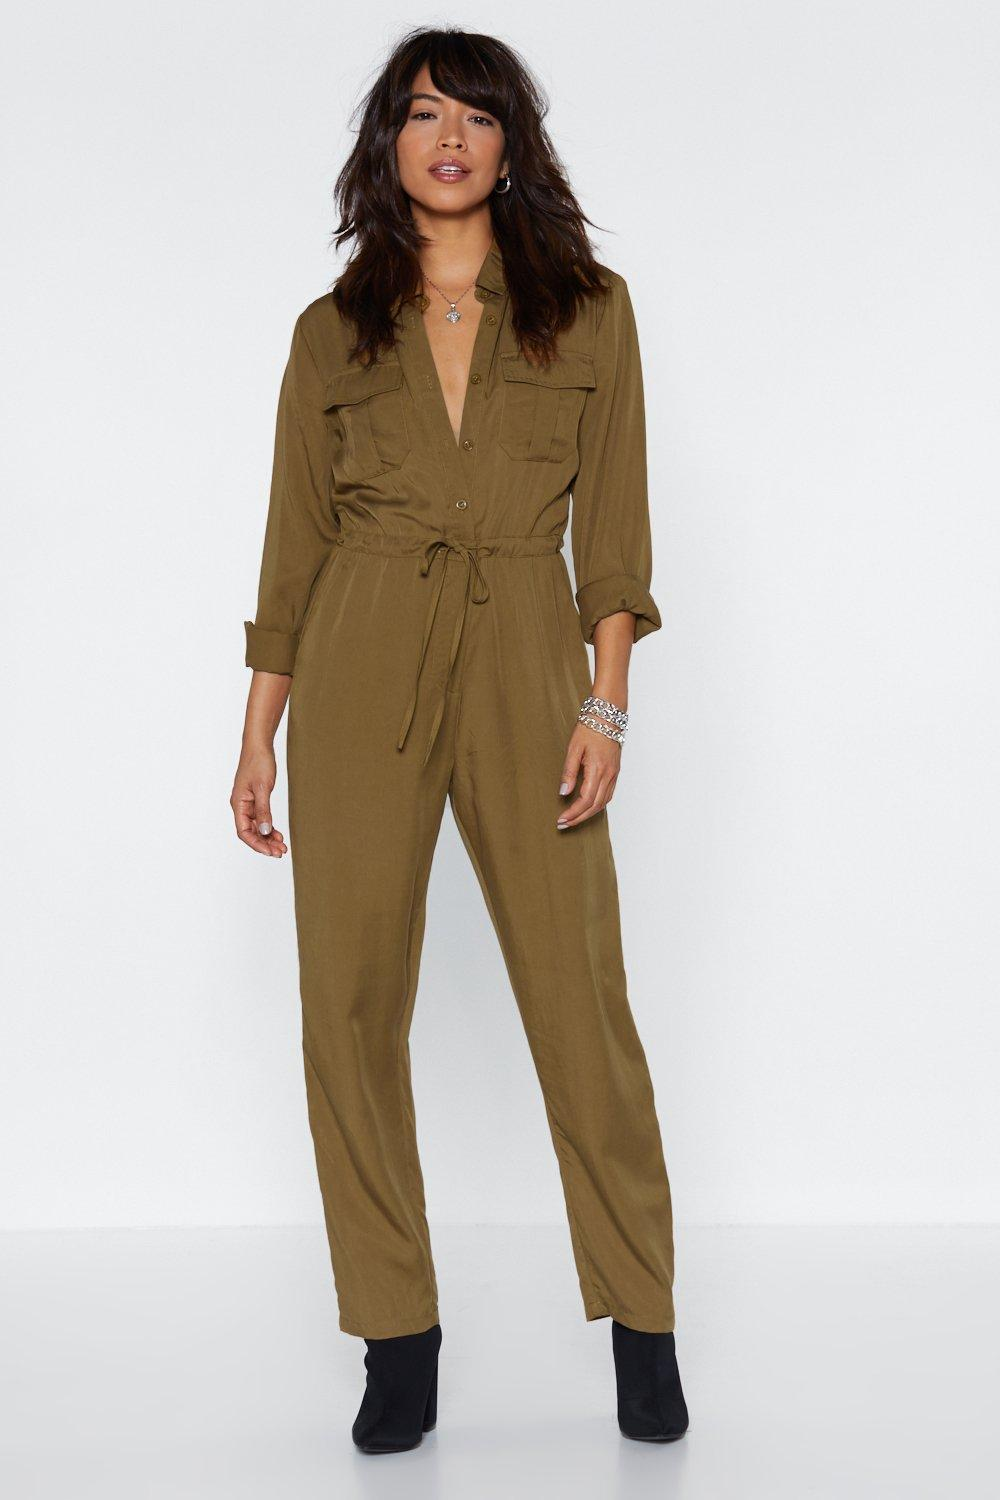 shop for original great deals on fashion 2019 best sell Drawn Together Utility Jumpsuit | Shop Clothes at Nasty Gal!